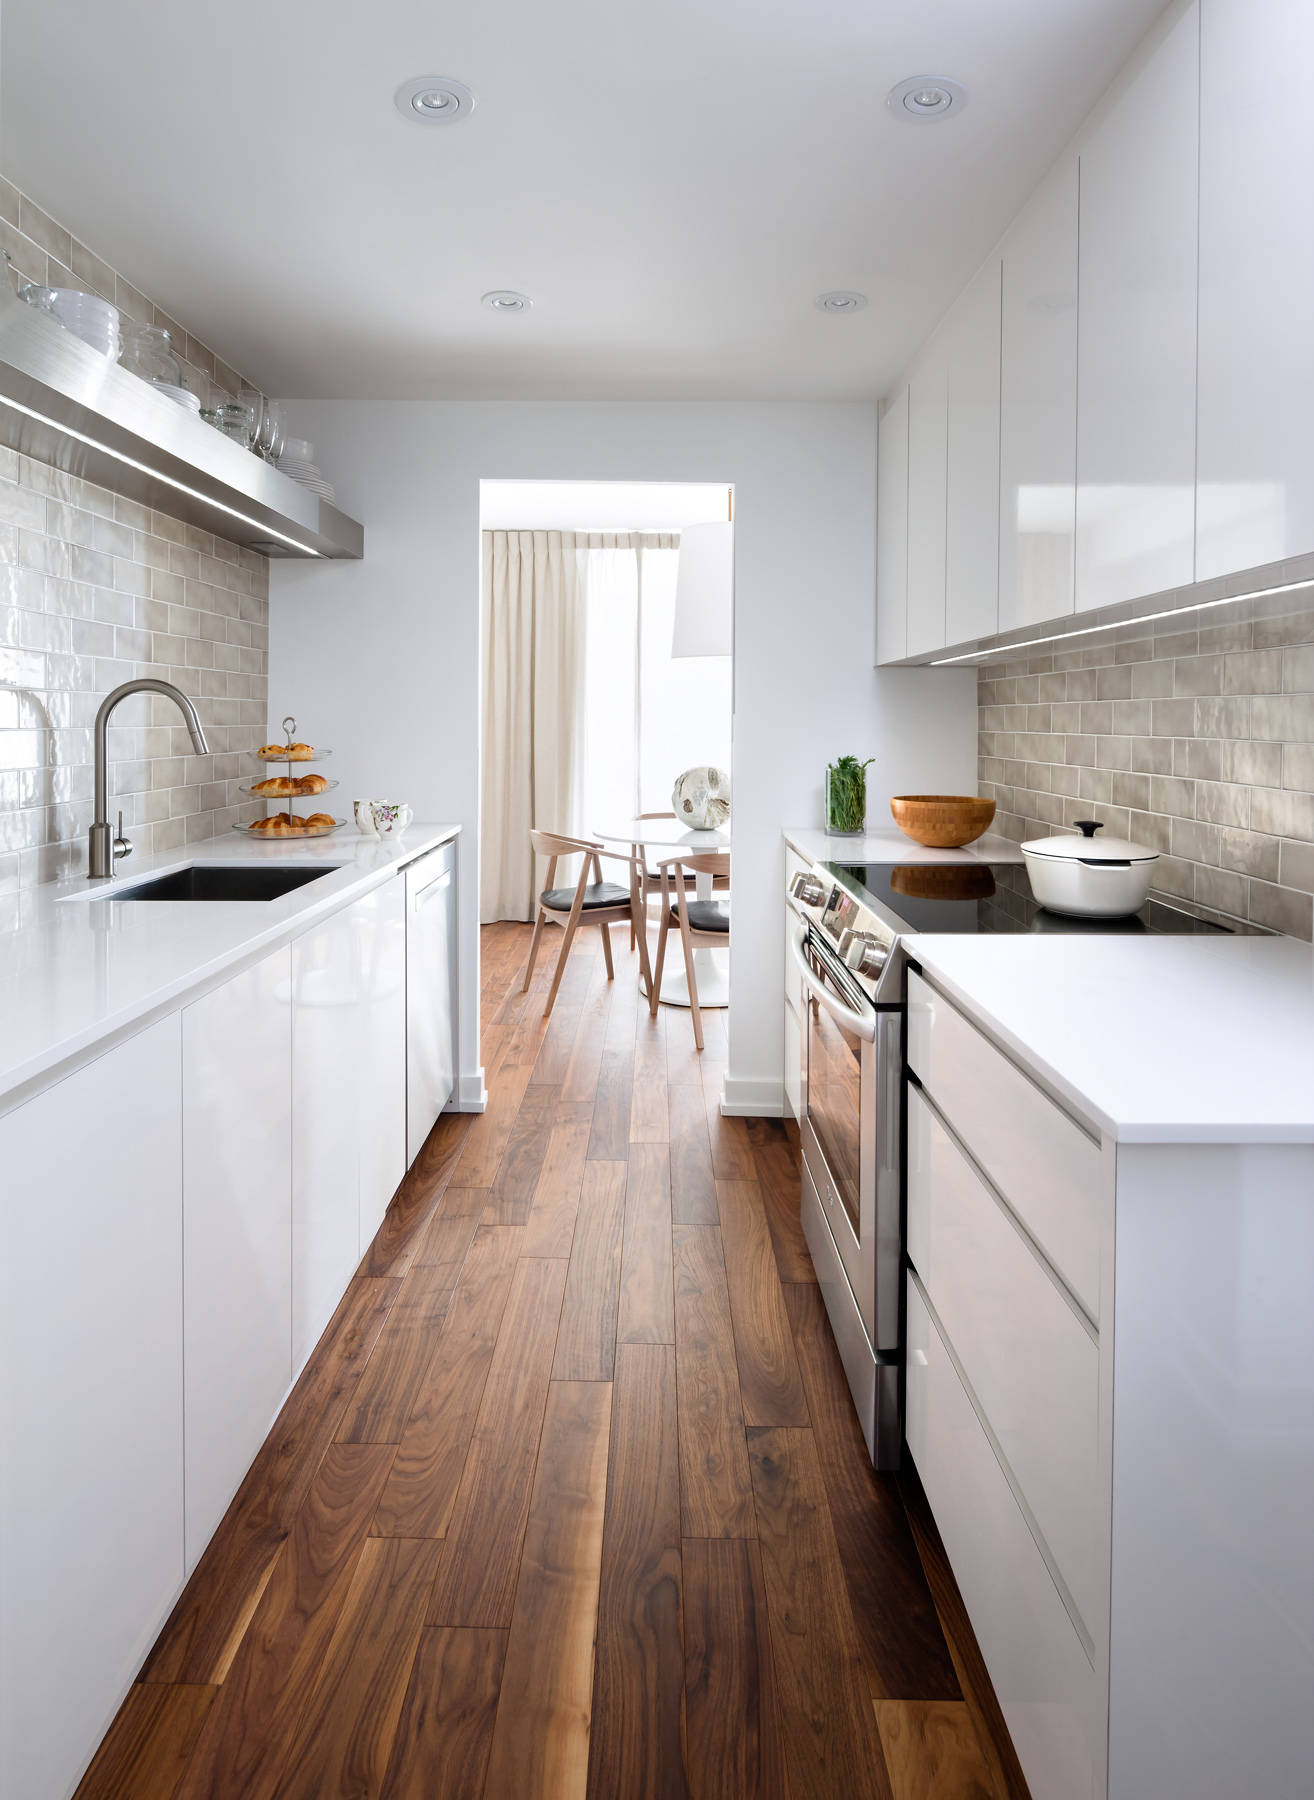 Ikea Galley Kitchen Room Image And Wallper 2017